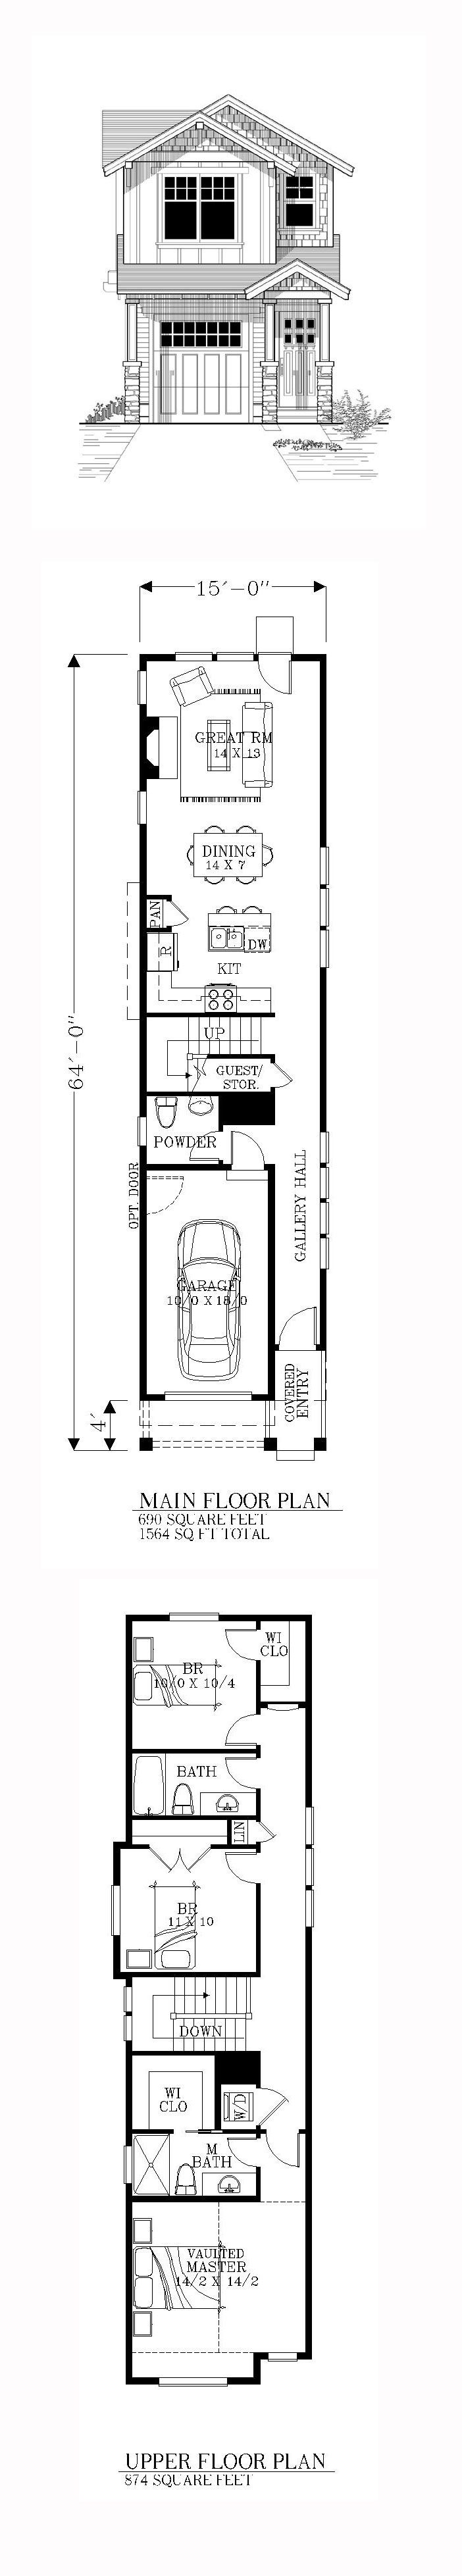 Small Three Bedroom House Plans 17 Best Ideas About Small House Plans On Pinterest Small Home